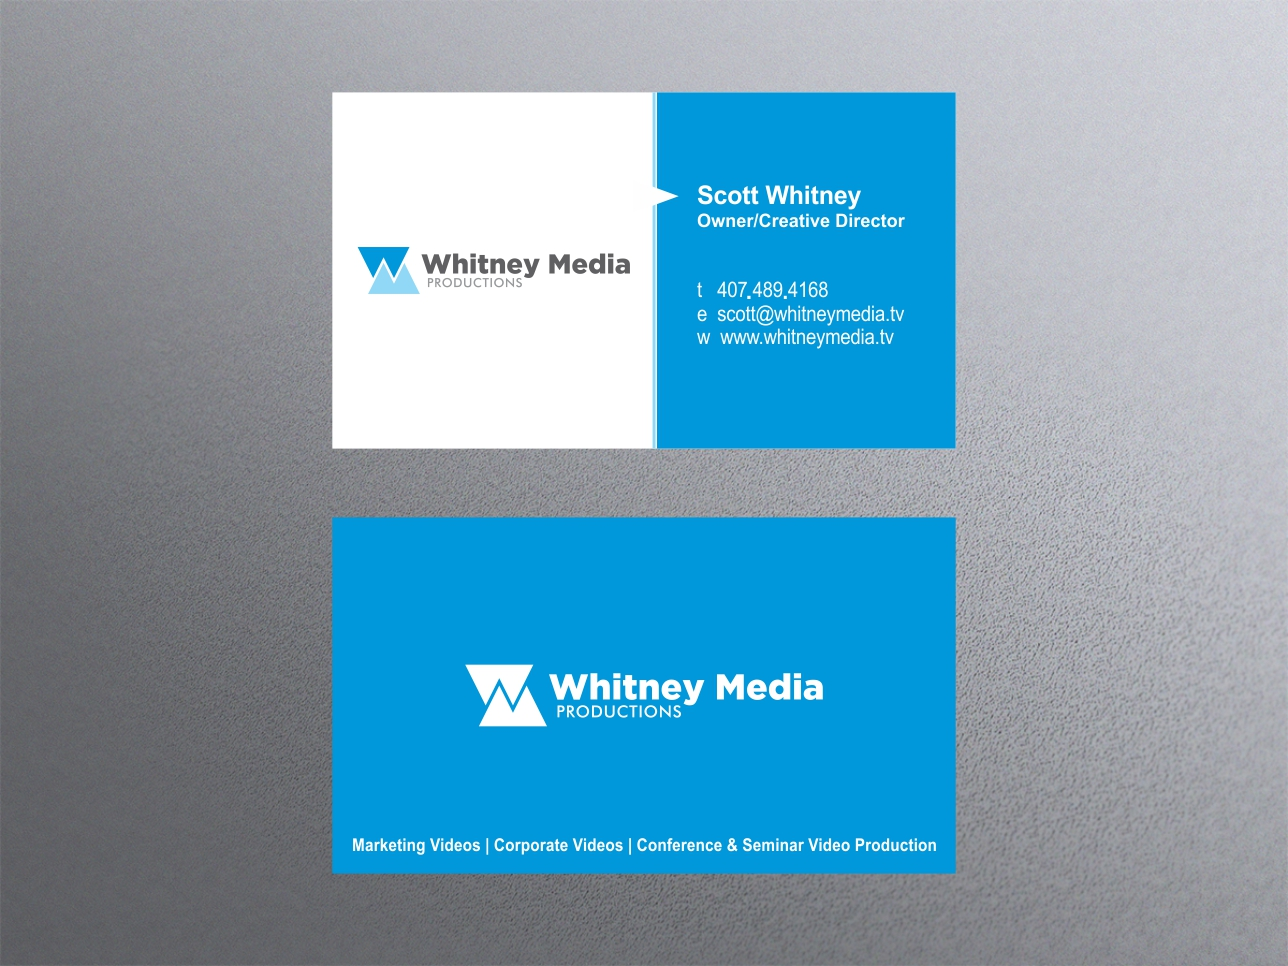 174 modern business card designs marketing business card design business card design by taimoor for whitney media productions design 4584604 reheart Images